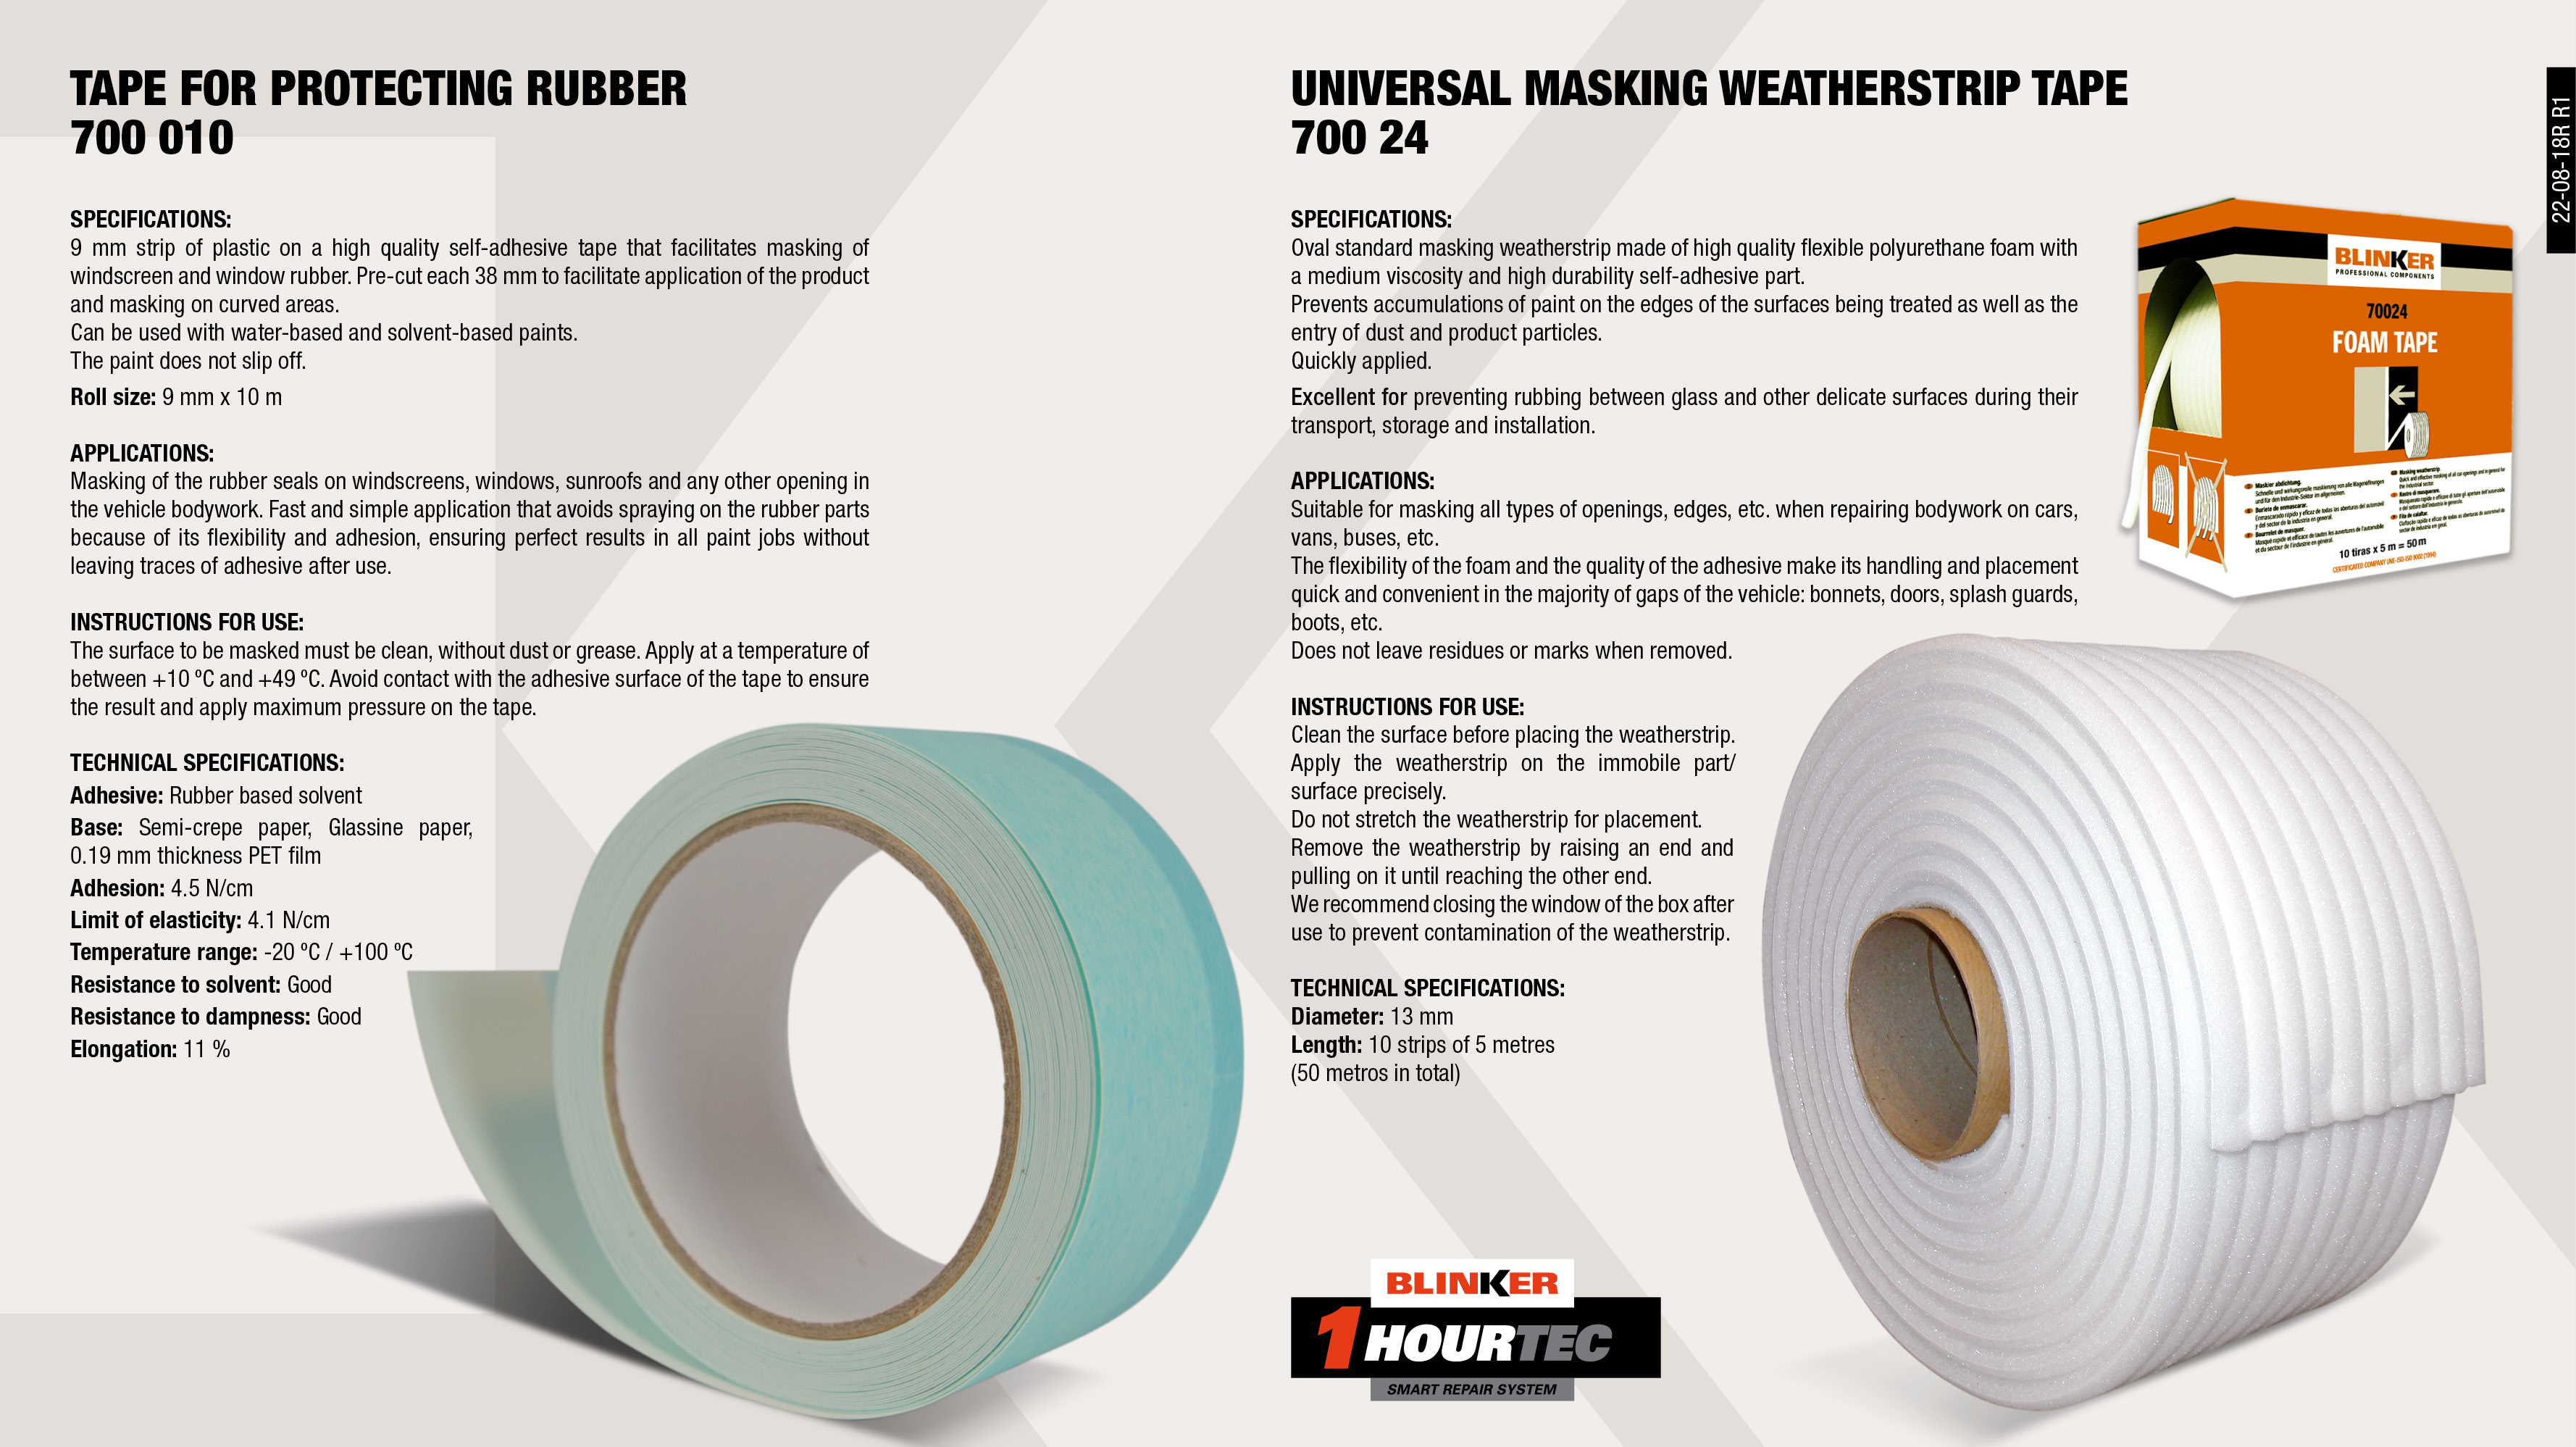 FOAM TAPE SELF-ADHESIVE MASK 13MMX5M (55M./BOX)             ,  									TAPE FOR PROTECTING RUBBER 9MMX10M                          ,